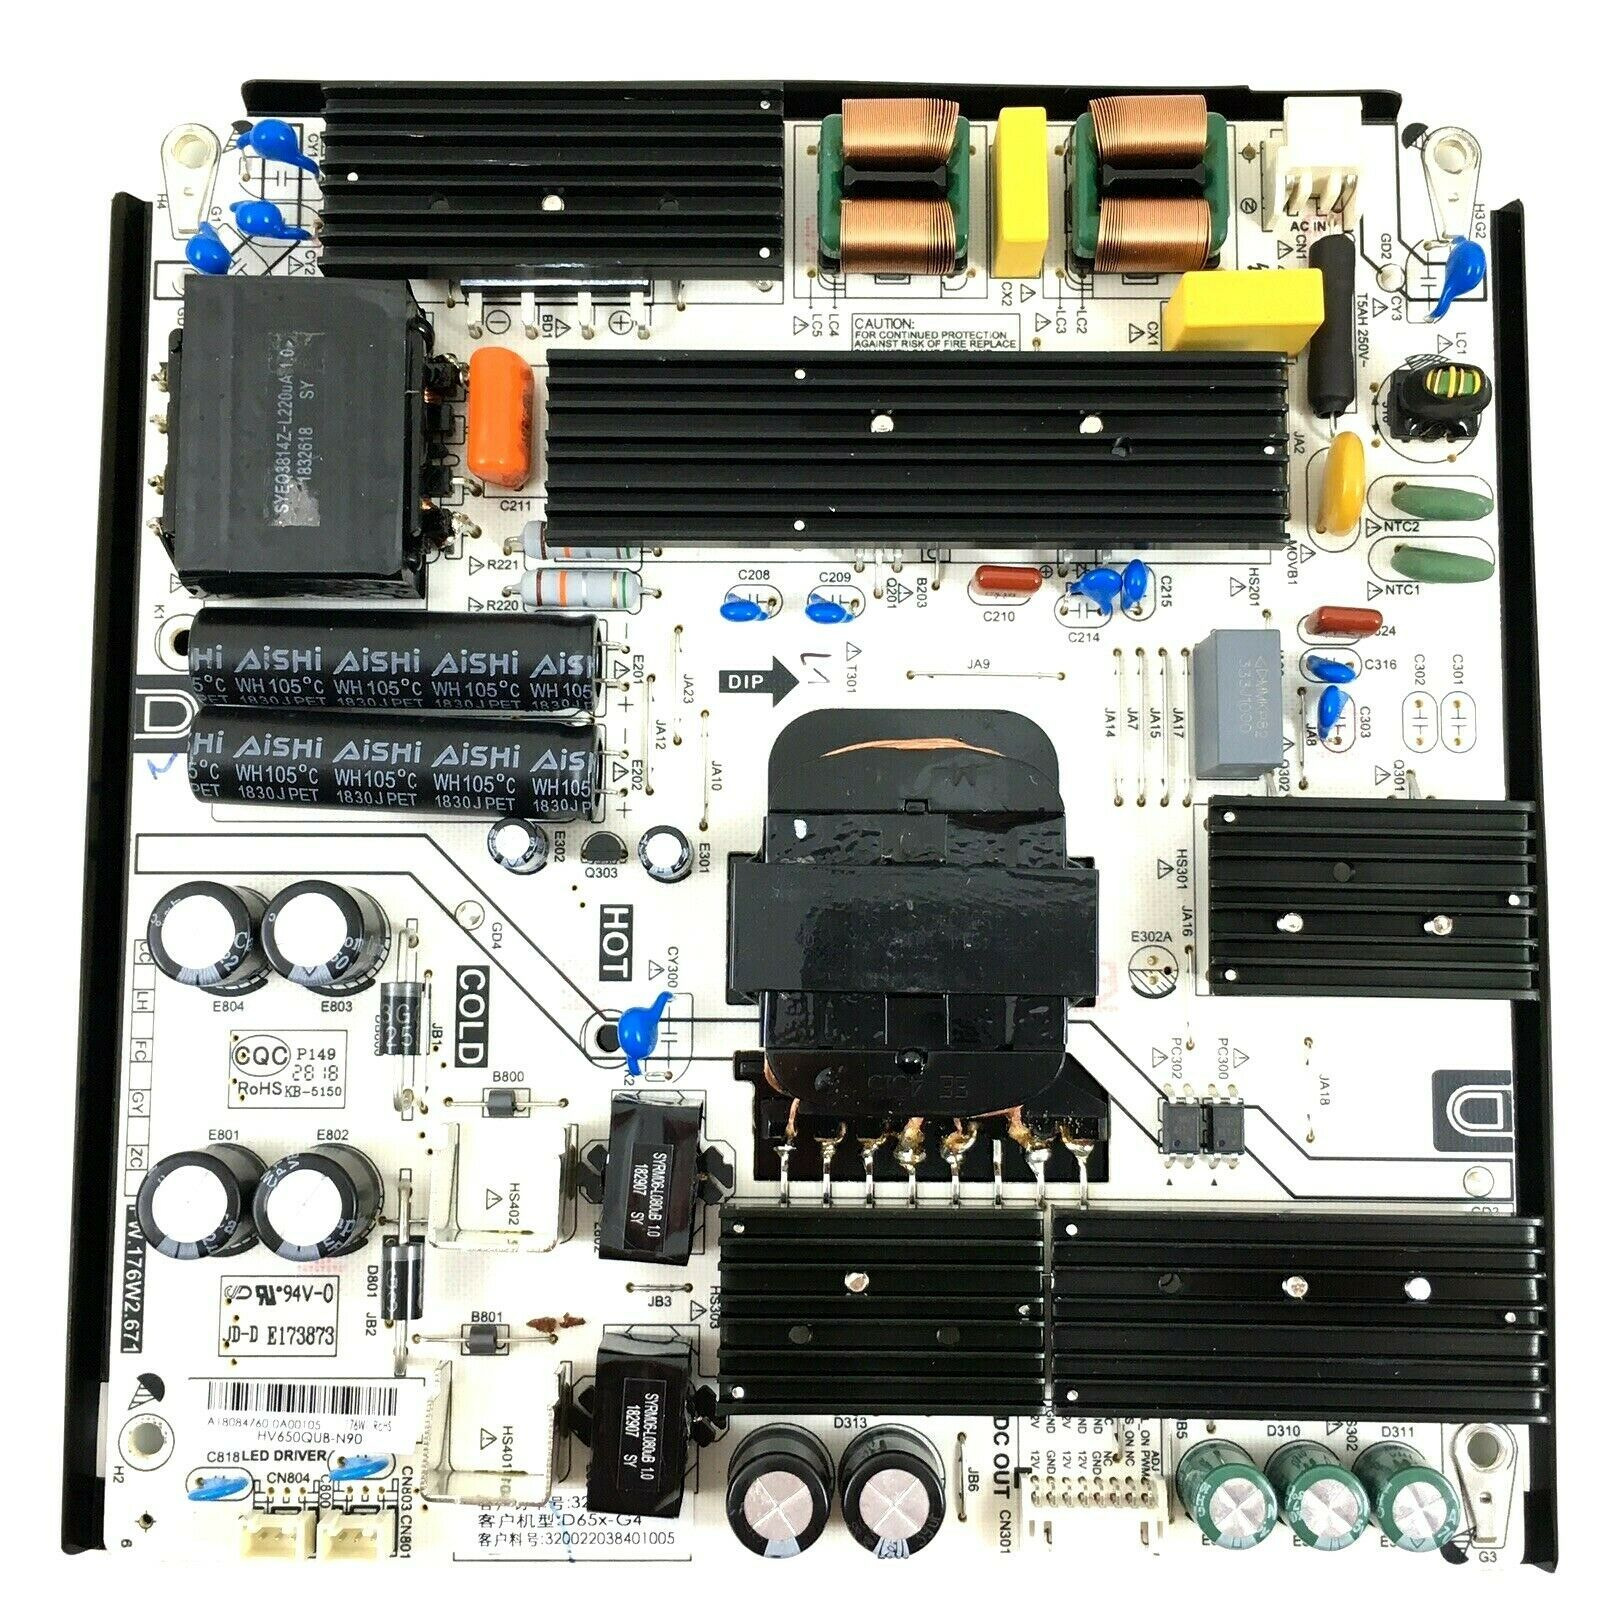 Primary image for VIZIO D65X-G4 Power Supply Board  PW.176W2.671  HV650QUB-N90  320022038401005